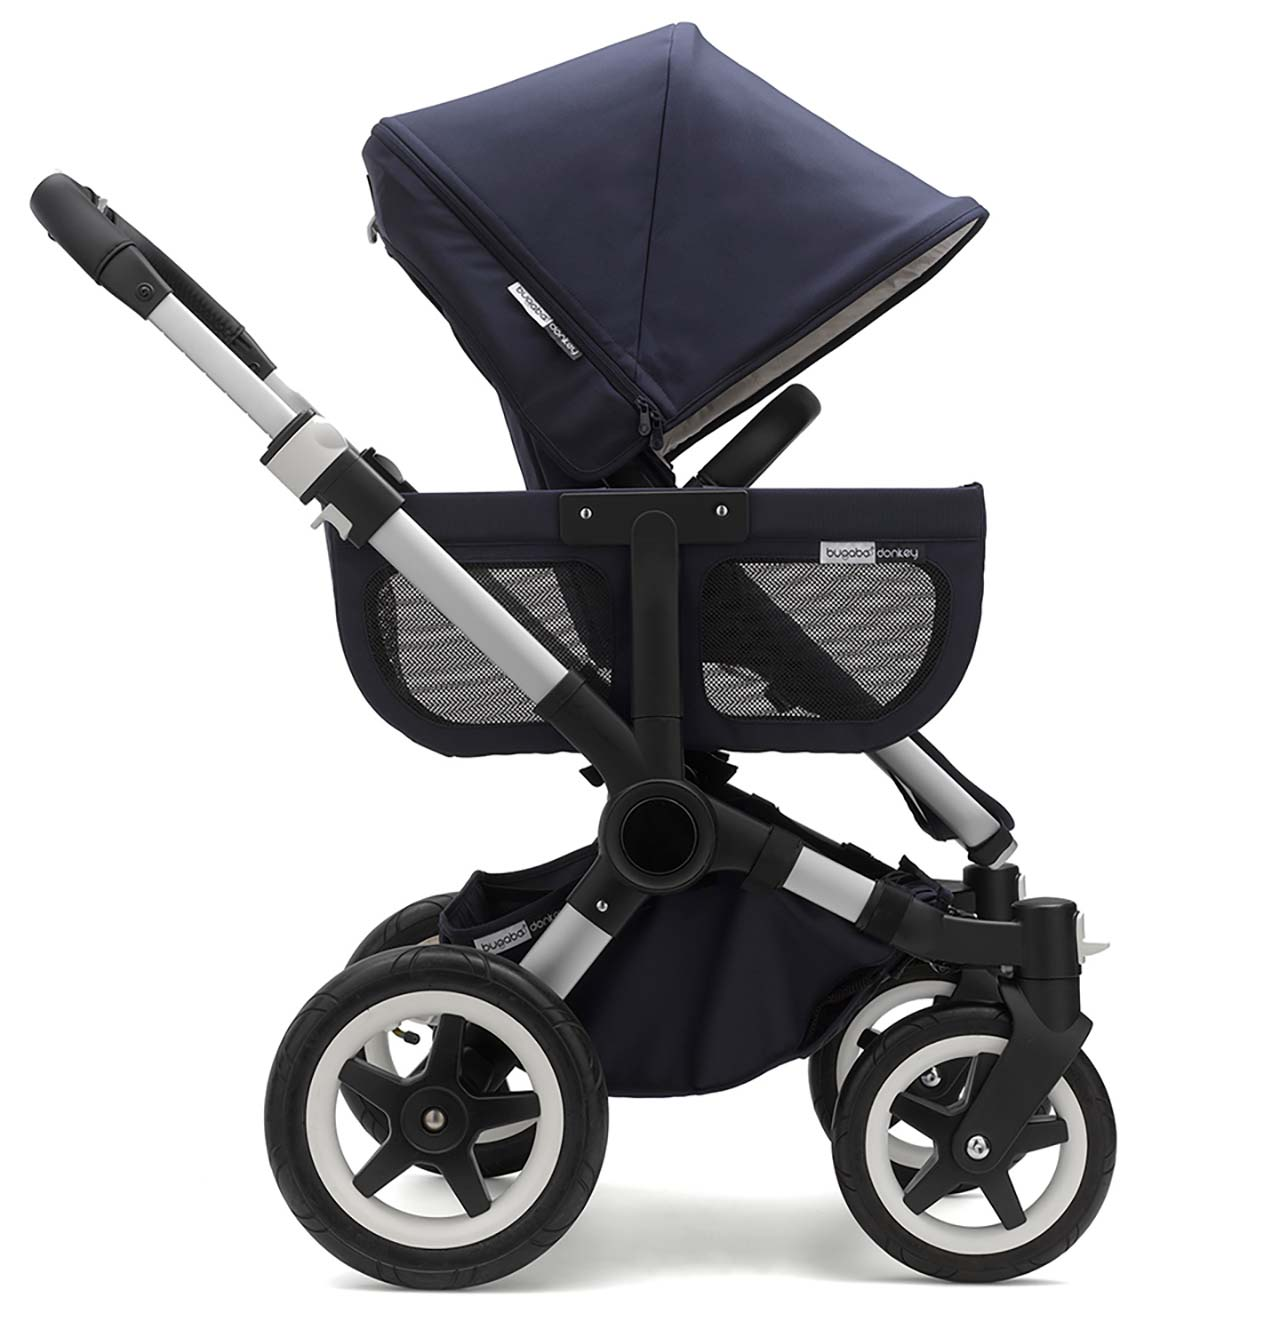 Originally inspired by 2001u0027s Bugaboo Frog the Classic+ Navy Blue edition of the Bugaboo Donkey comes with an extendable navy blue sun canopy bassinet and ...  sc 1 st  Mama Disrupt & STYLE: Stylish update of a classic Bugaboo - Mama Disrupt®